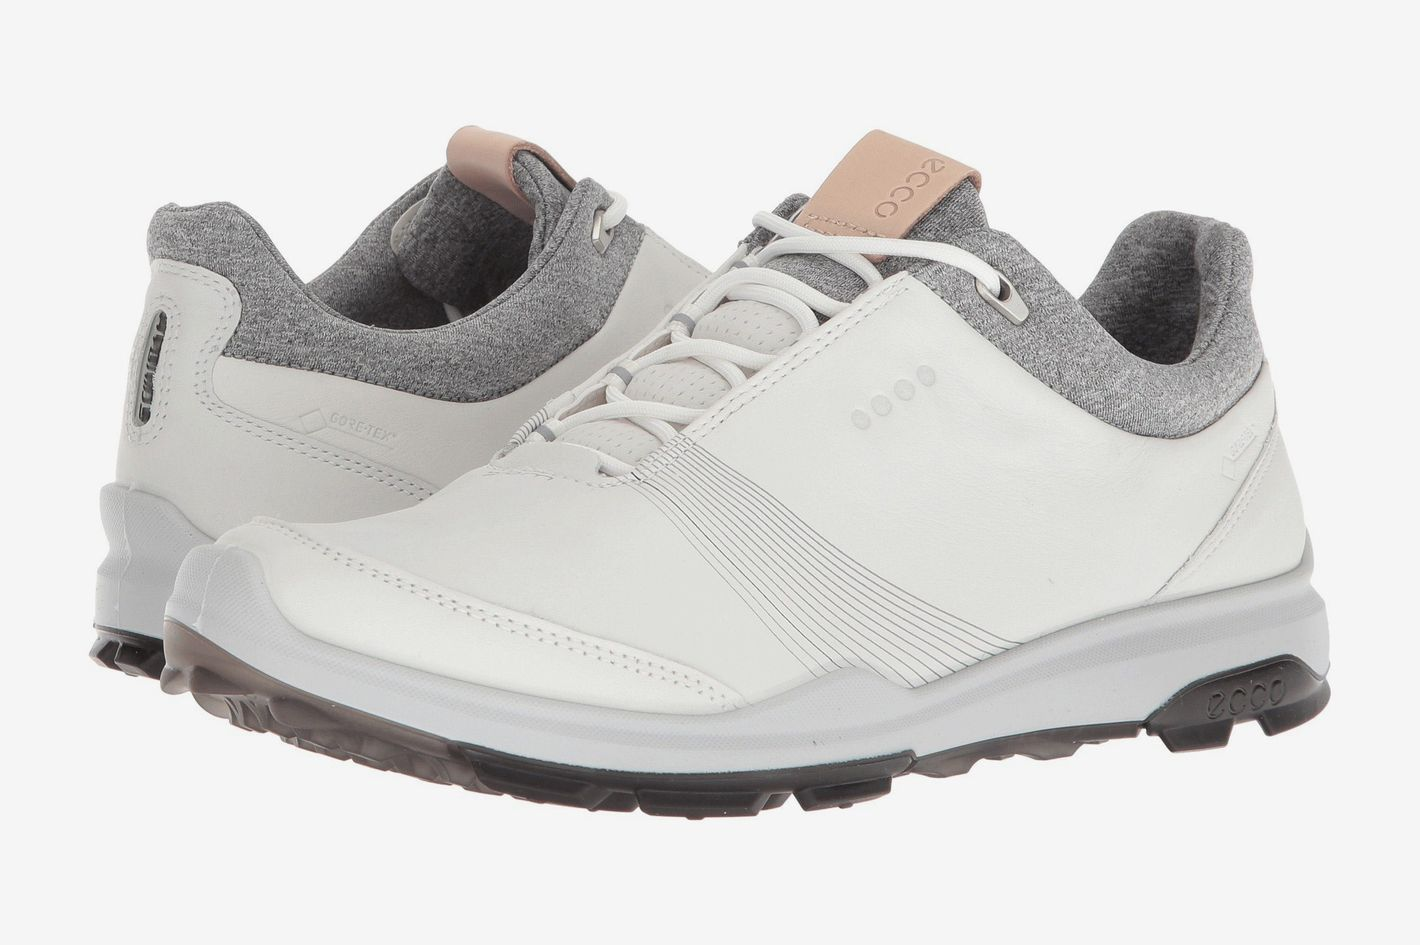 a19a85ee4108 Best golf shoes for women. Ecco Golf Biom Hybrid 3 GTX